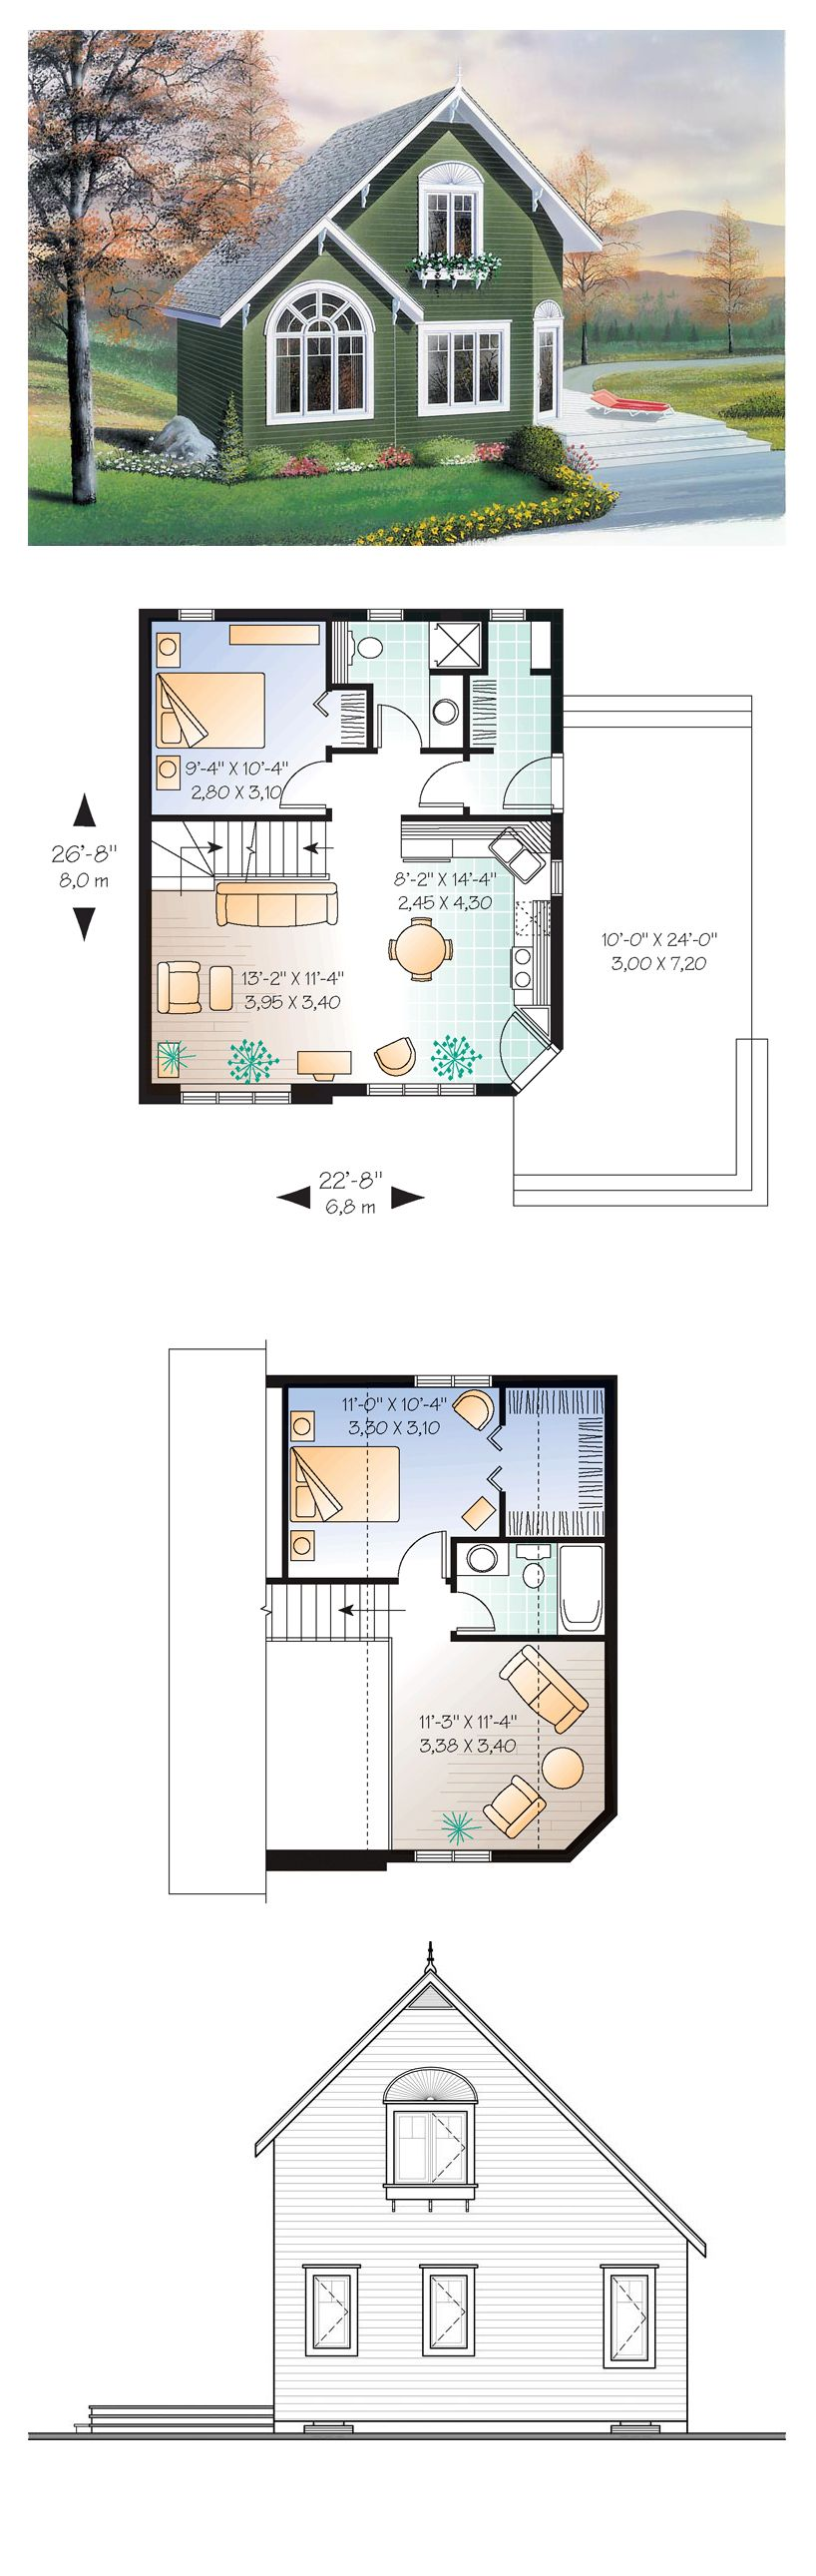 Narrow lot house plan 76168 total living area 991 sq for Narrow apartment plans